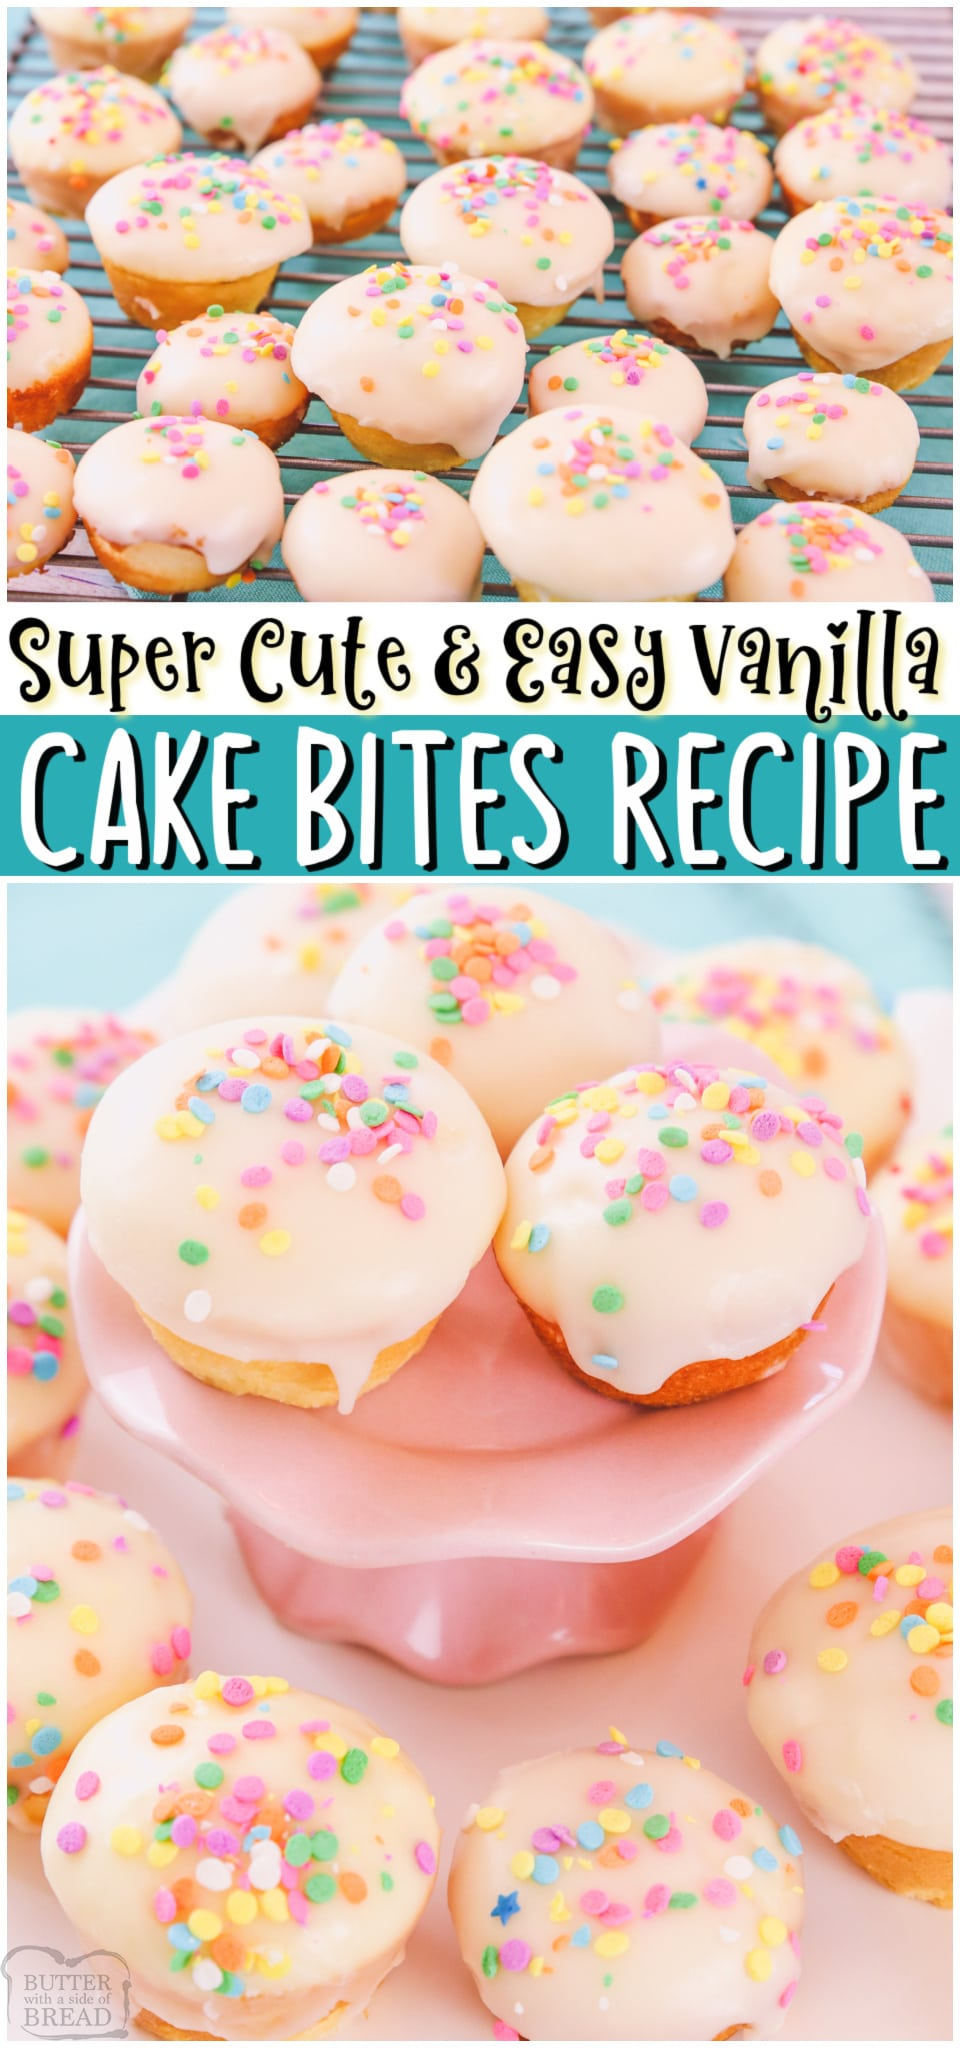 Easy Vanilla Cake Bites are simple glazed bite-sized treats that are so easy to make! Super cute & beyond tasty, these vanilla cake bites will be the hit of the party! #cake #vanilla #party #dessert #sprinkles #easyrecipe from BUTTER WITH A SIDE OF BREAD